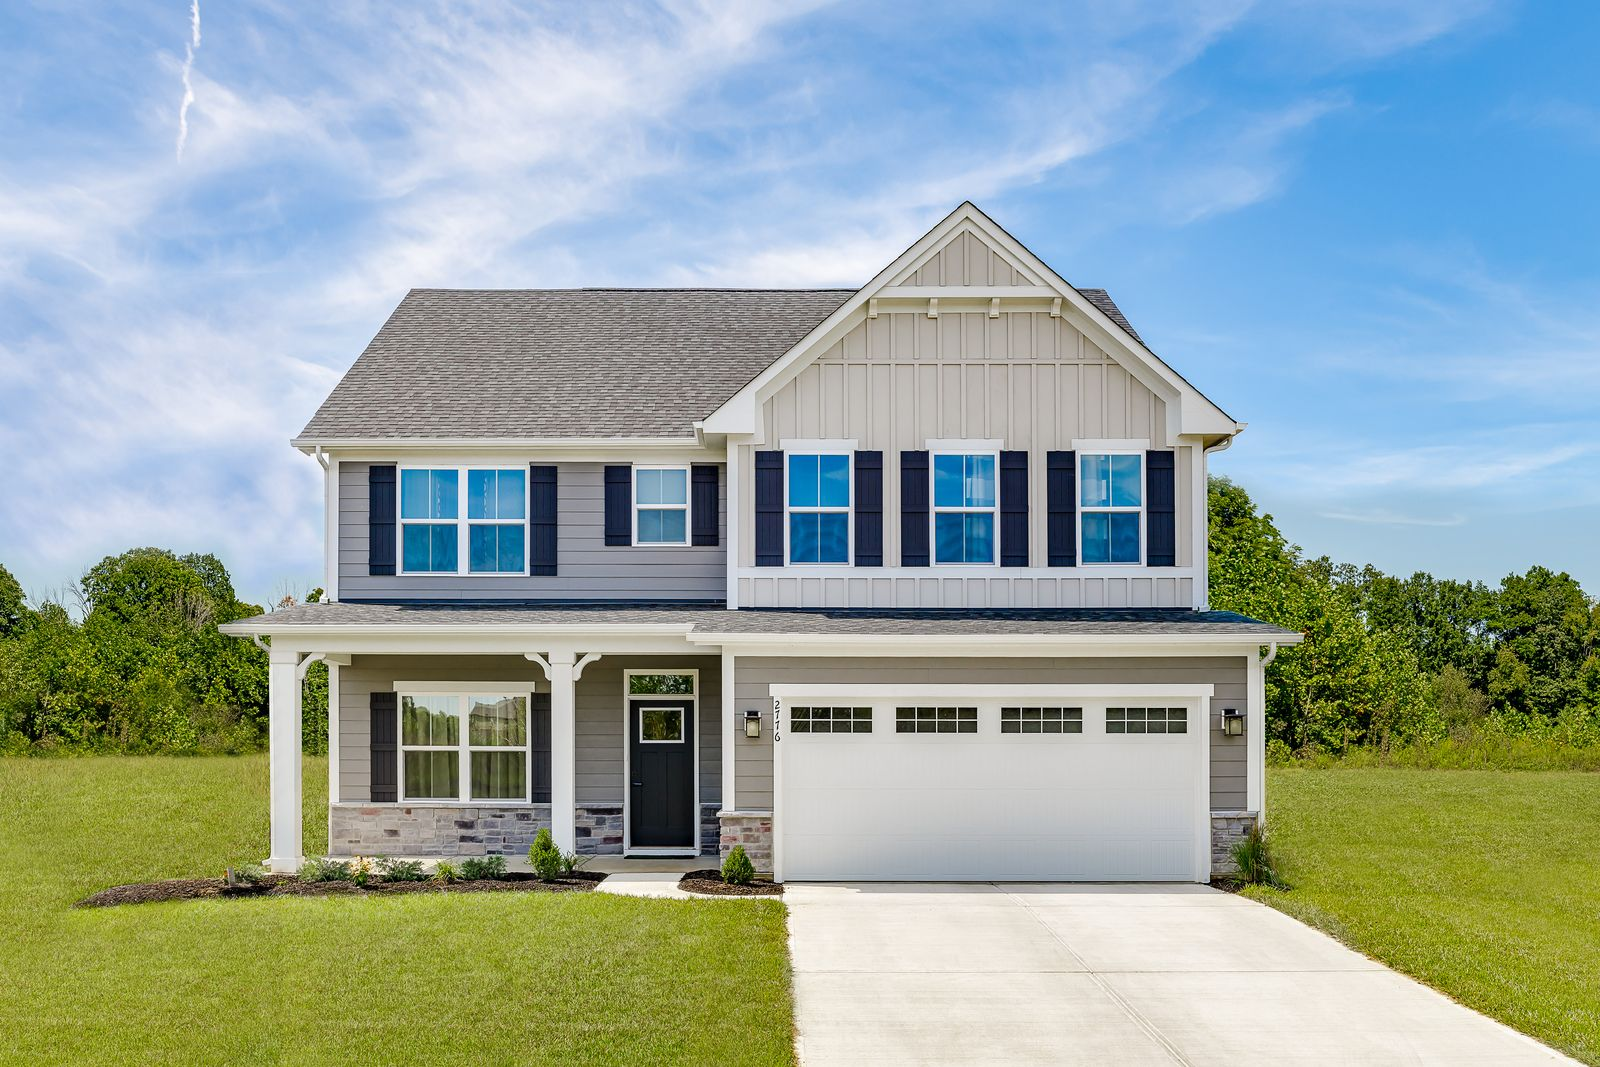 Welcome to Lafayette Meadow in South Fayette:The newest community in South Fayette with stunning views, up to 6 bedrooms, 3 car garages and located between Robinson and Southpointe.Click here to schedule an appointment.